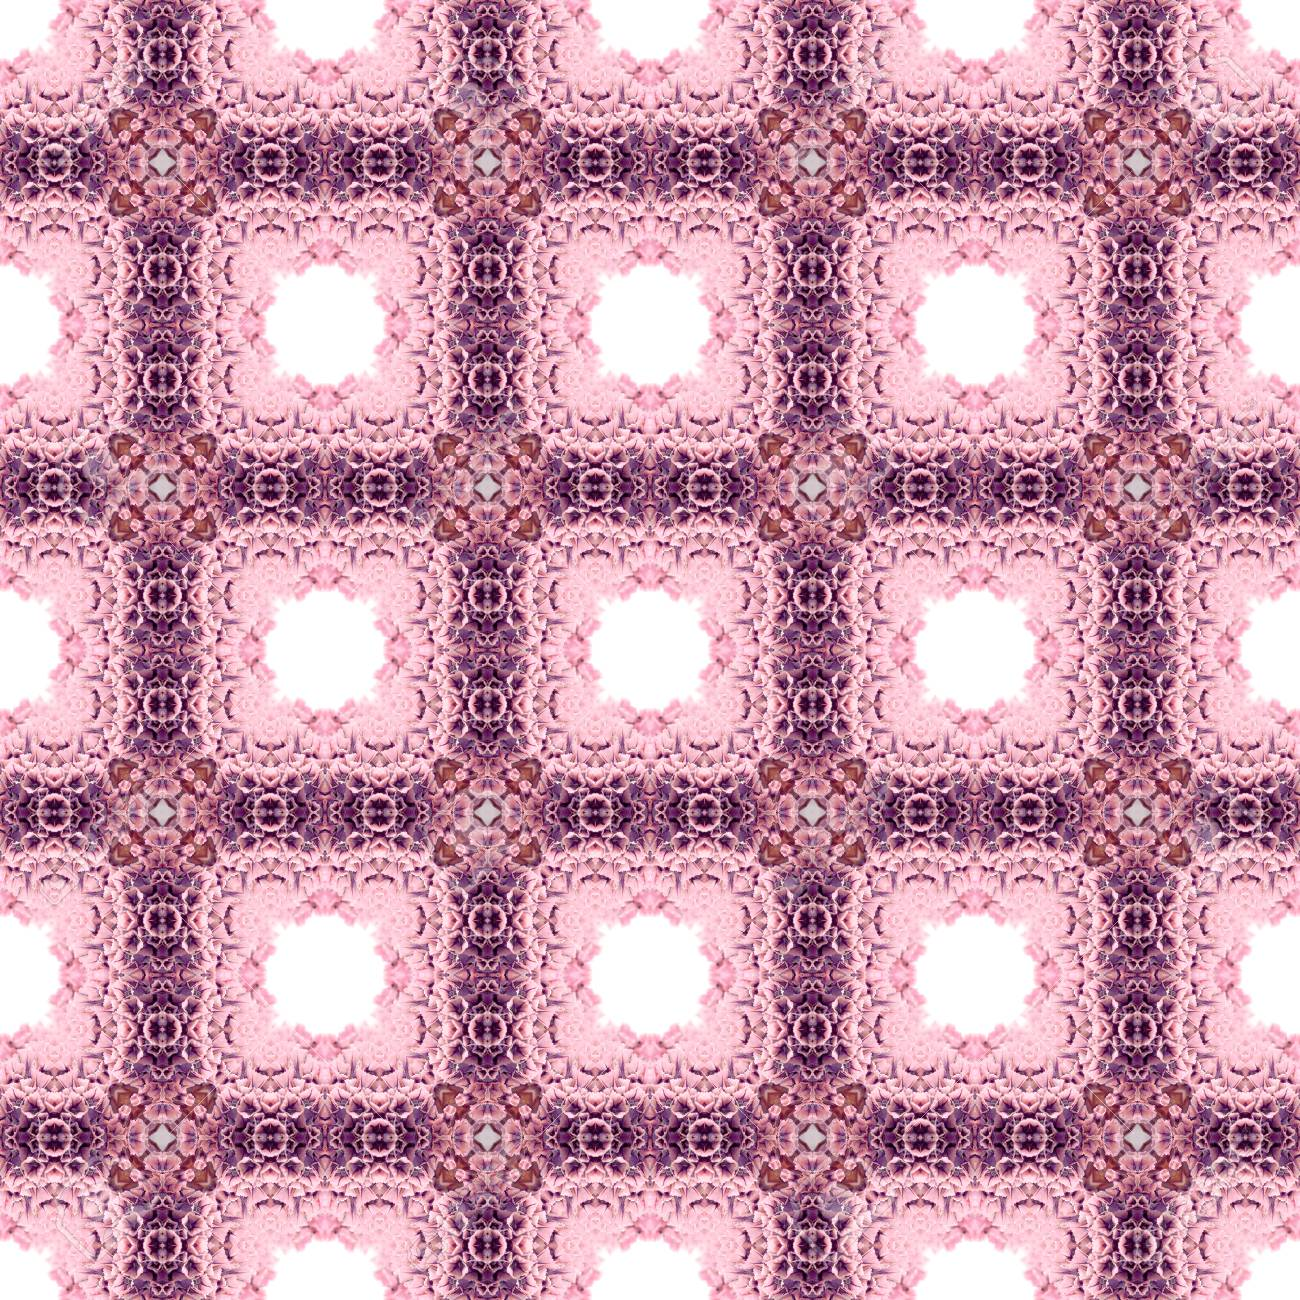 Abstract flowers seamless pattern background. Kaleidoscope from flowers. Hydraulic tile design. - 104074712